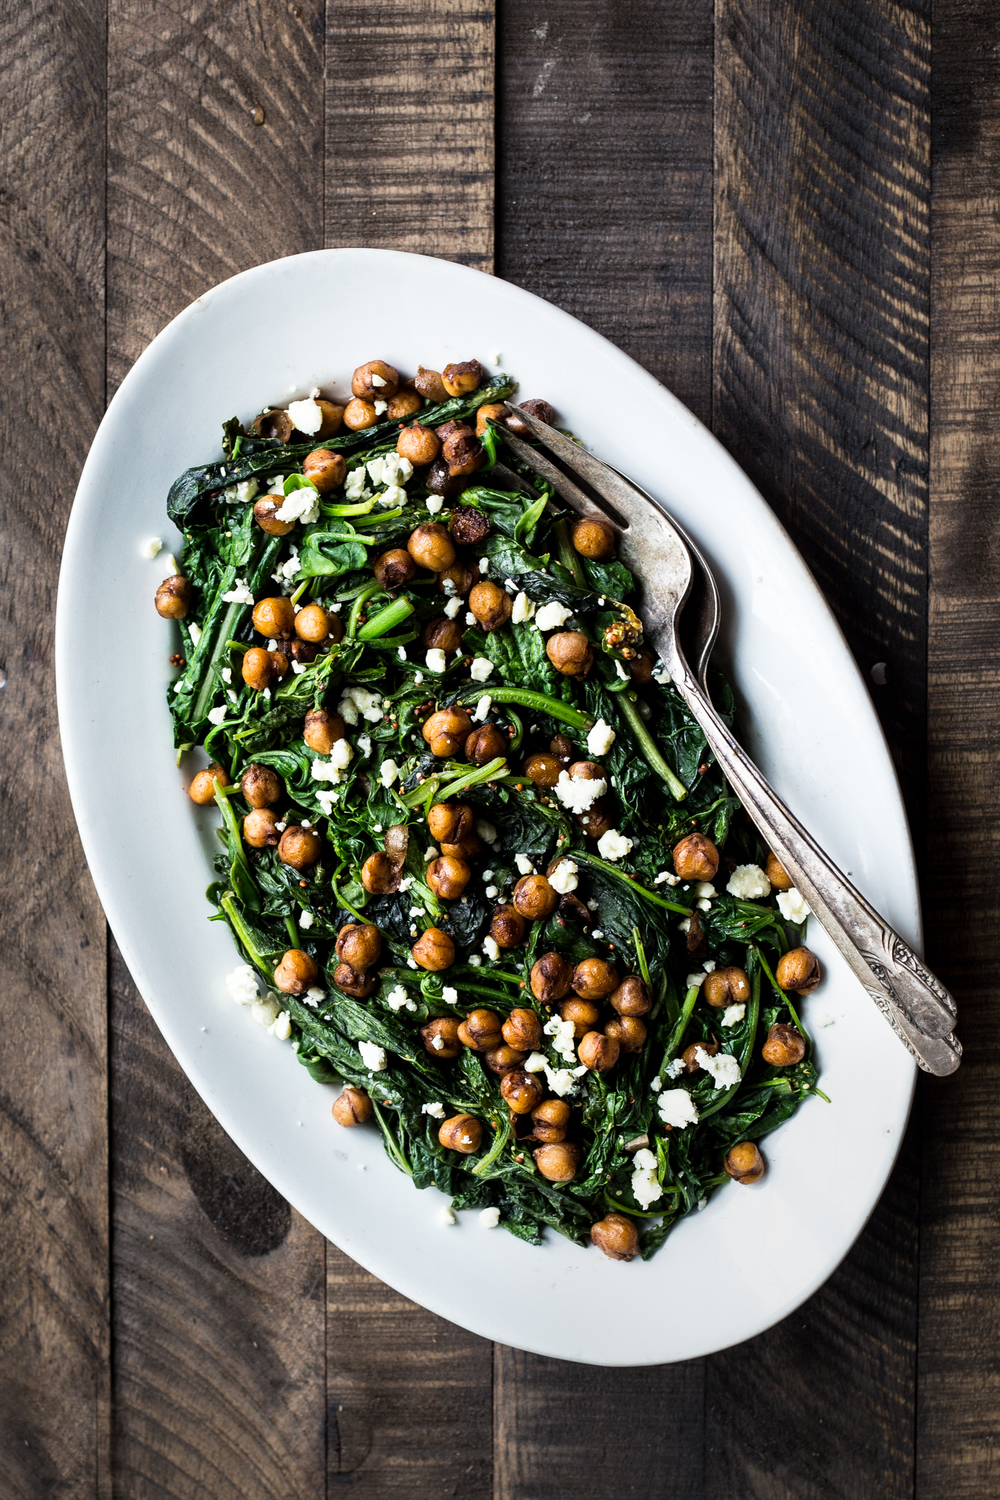 Mustard Greens with Balsamic-Glazed Chickpeas (you can also use the mizuna that's in the mustard green bunches!)